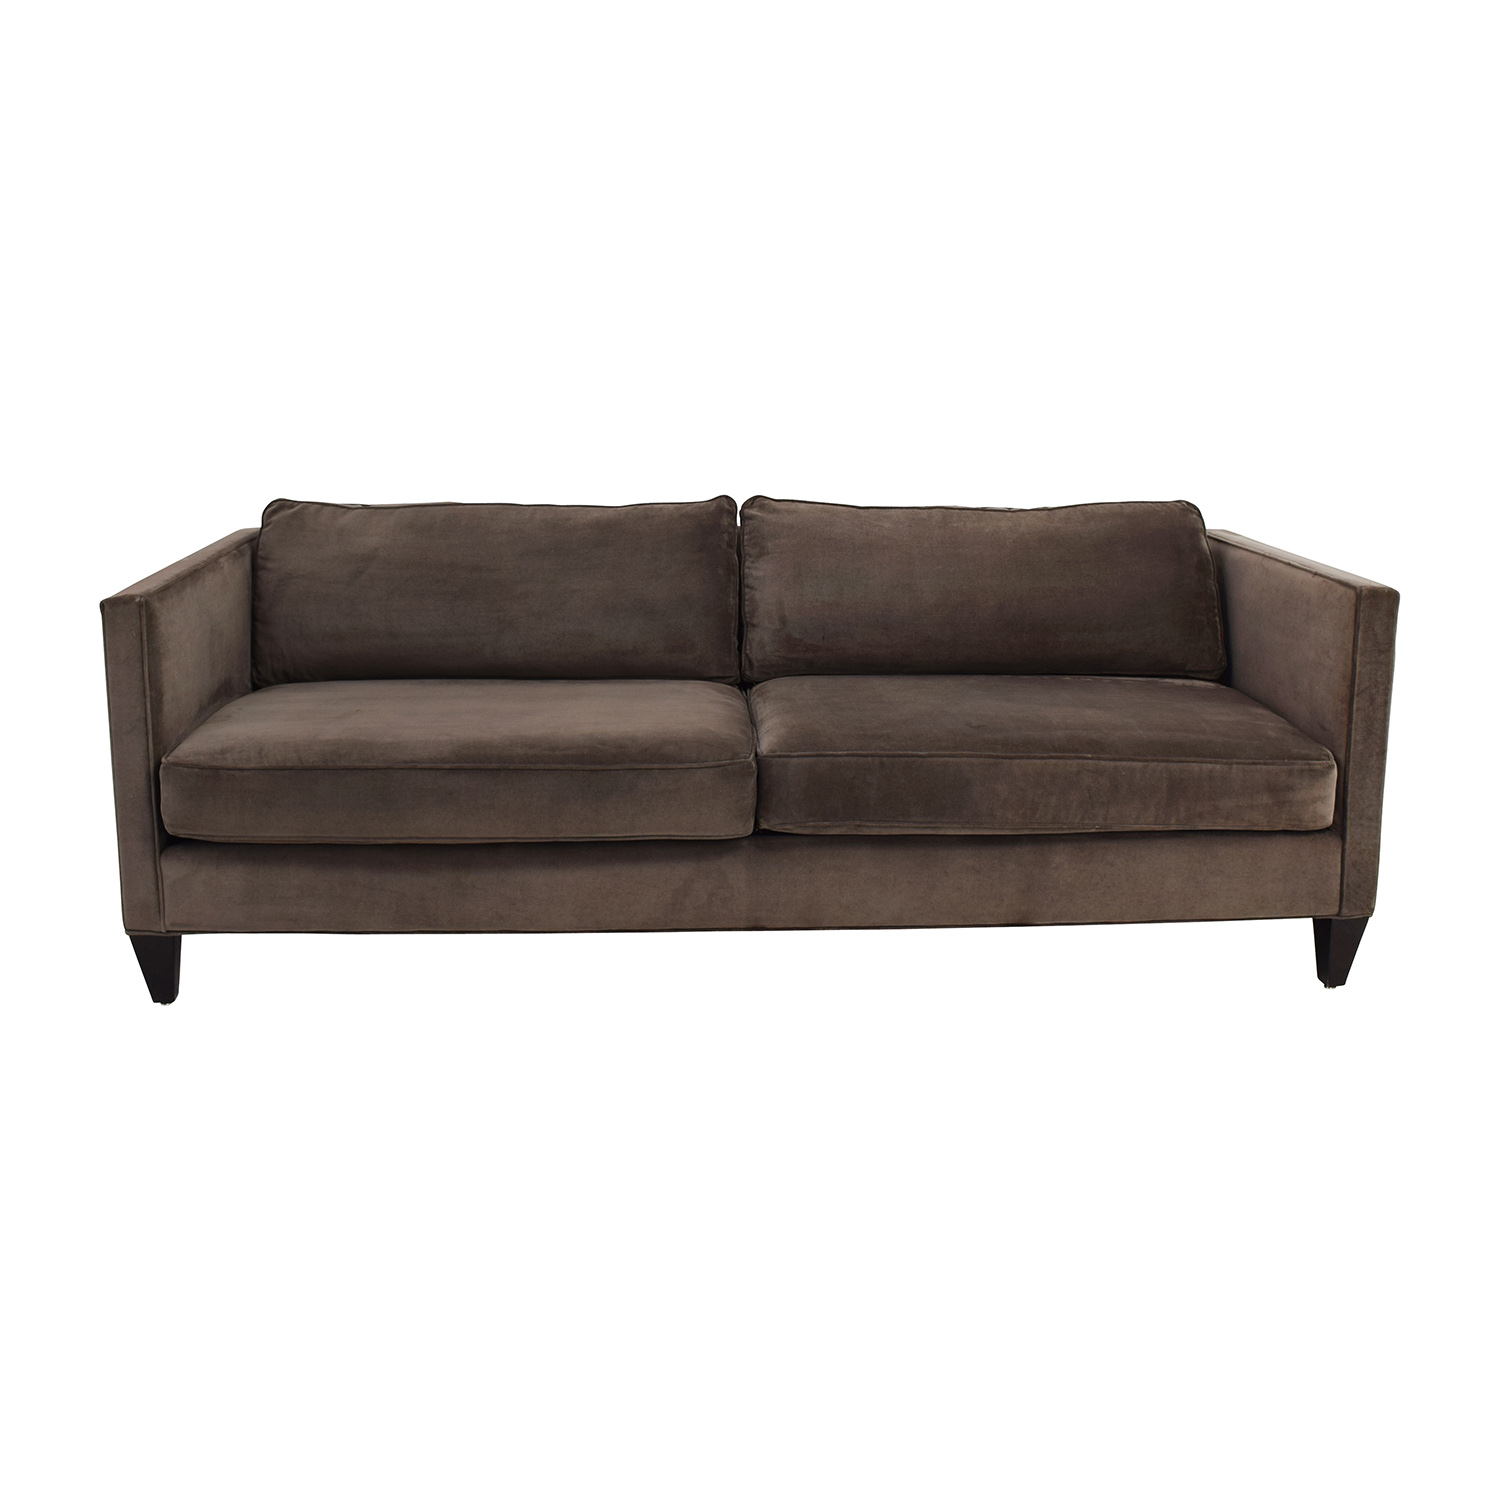 Rowe Furniture Rowe Furniture Mitchell Brown Two Cushion Sofa discount